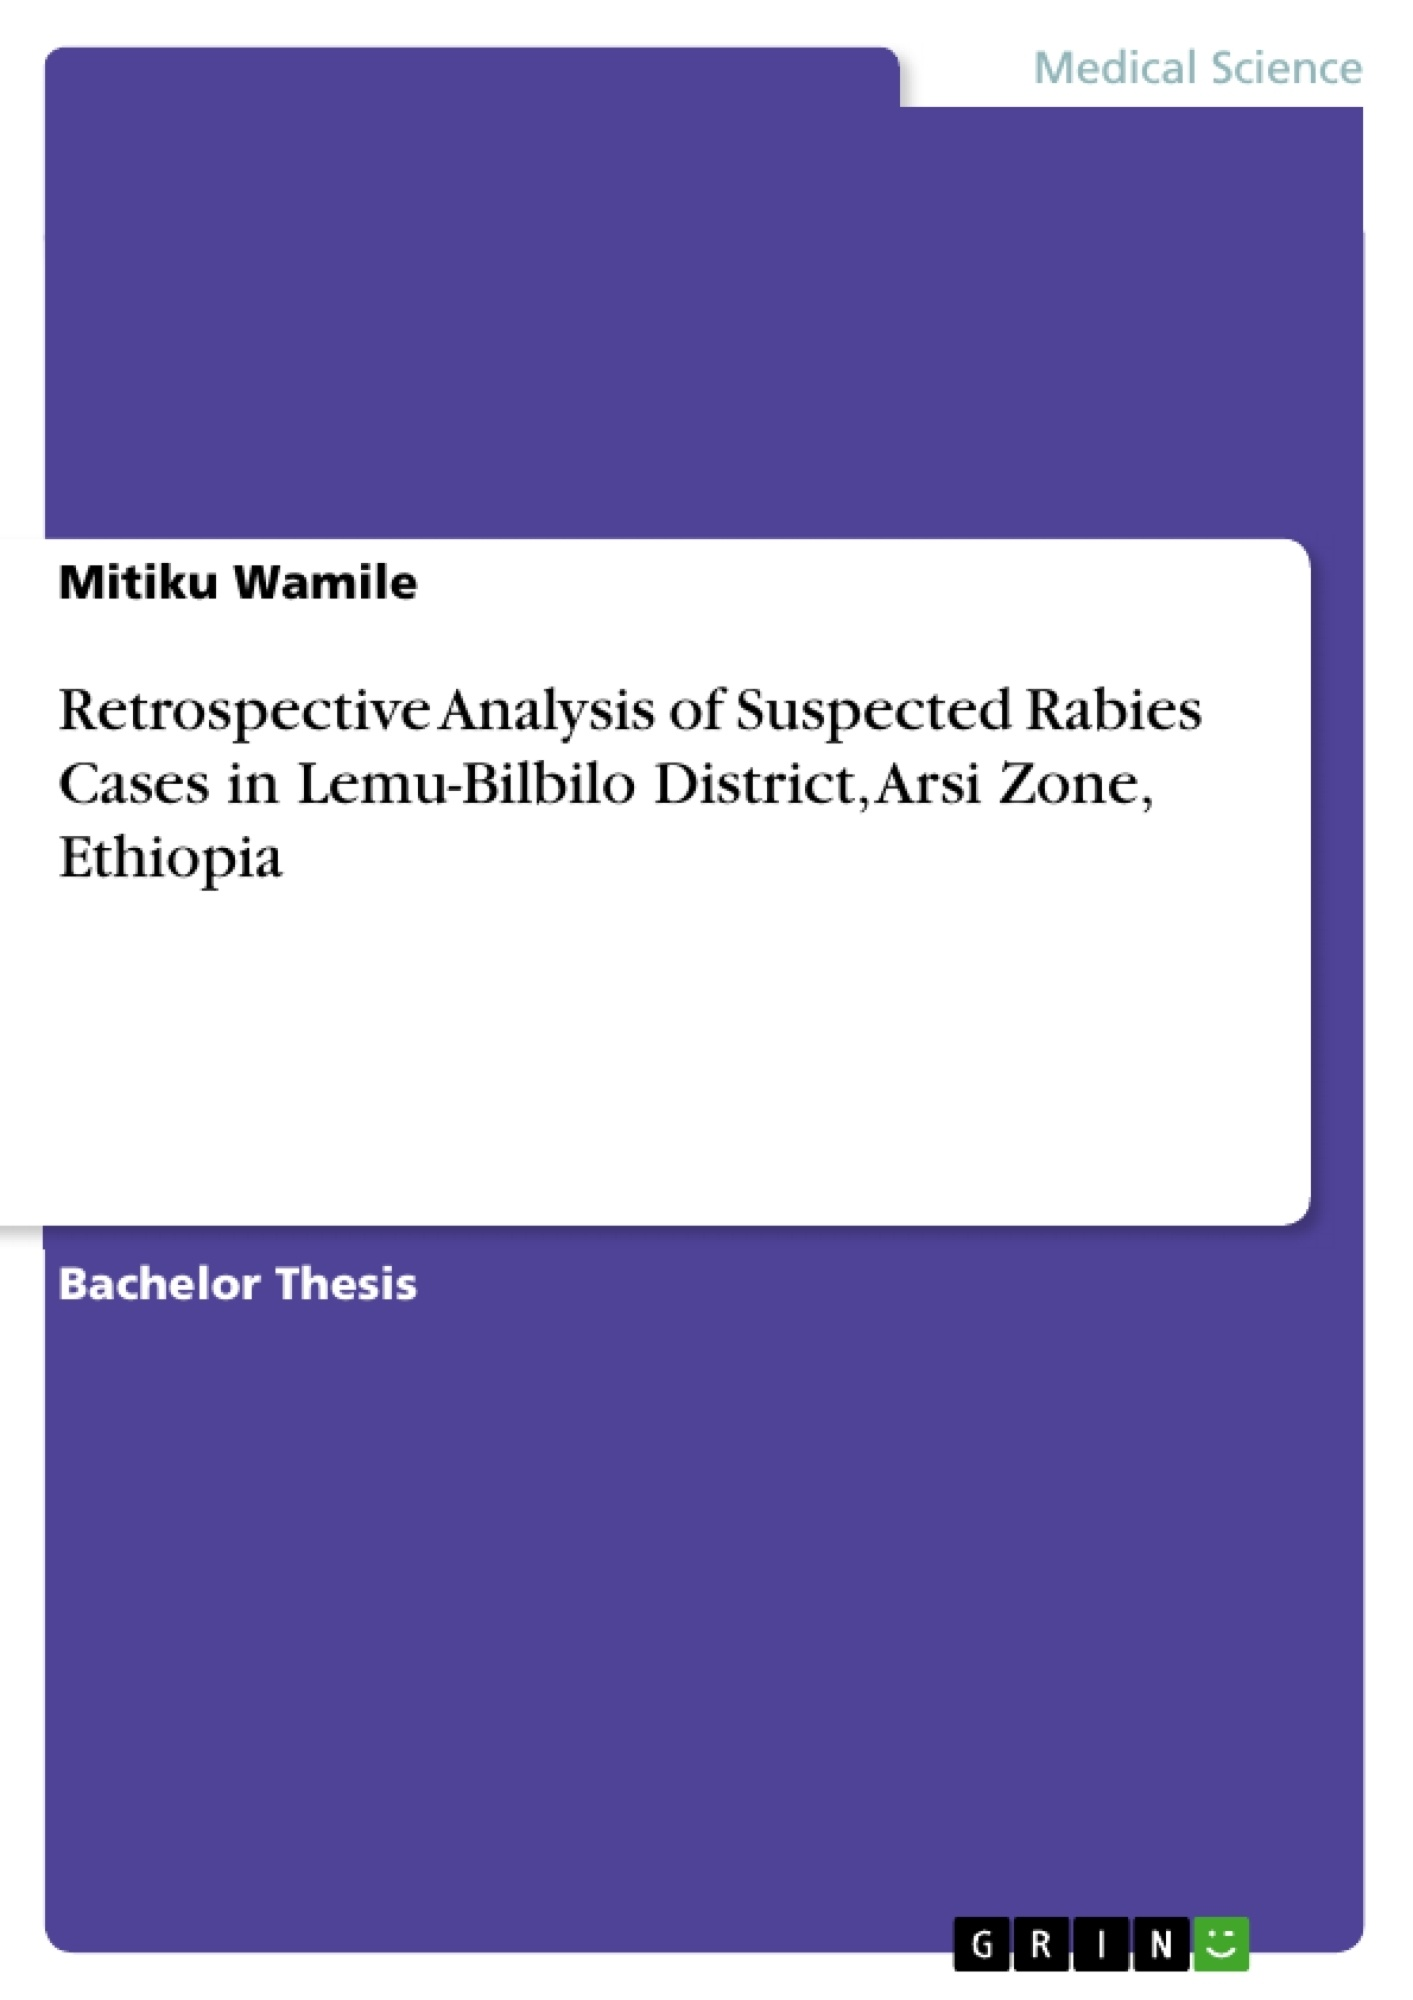 Title: Retrospective Analysis of Suspected Rabies Cases in Lemu-Bilbilo District, Arsi Zone, Ethiopia